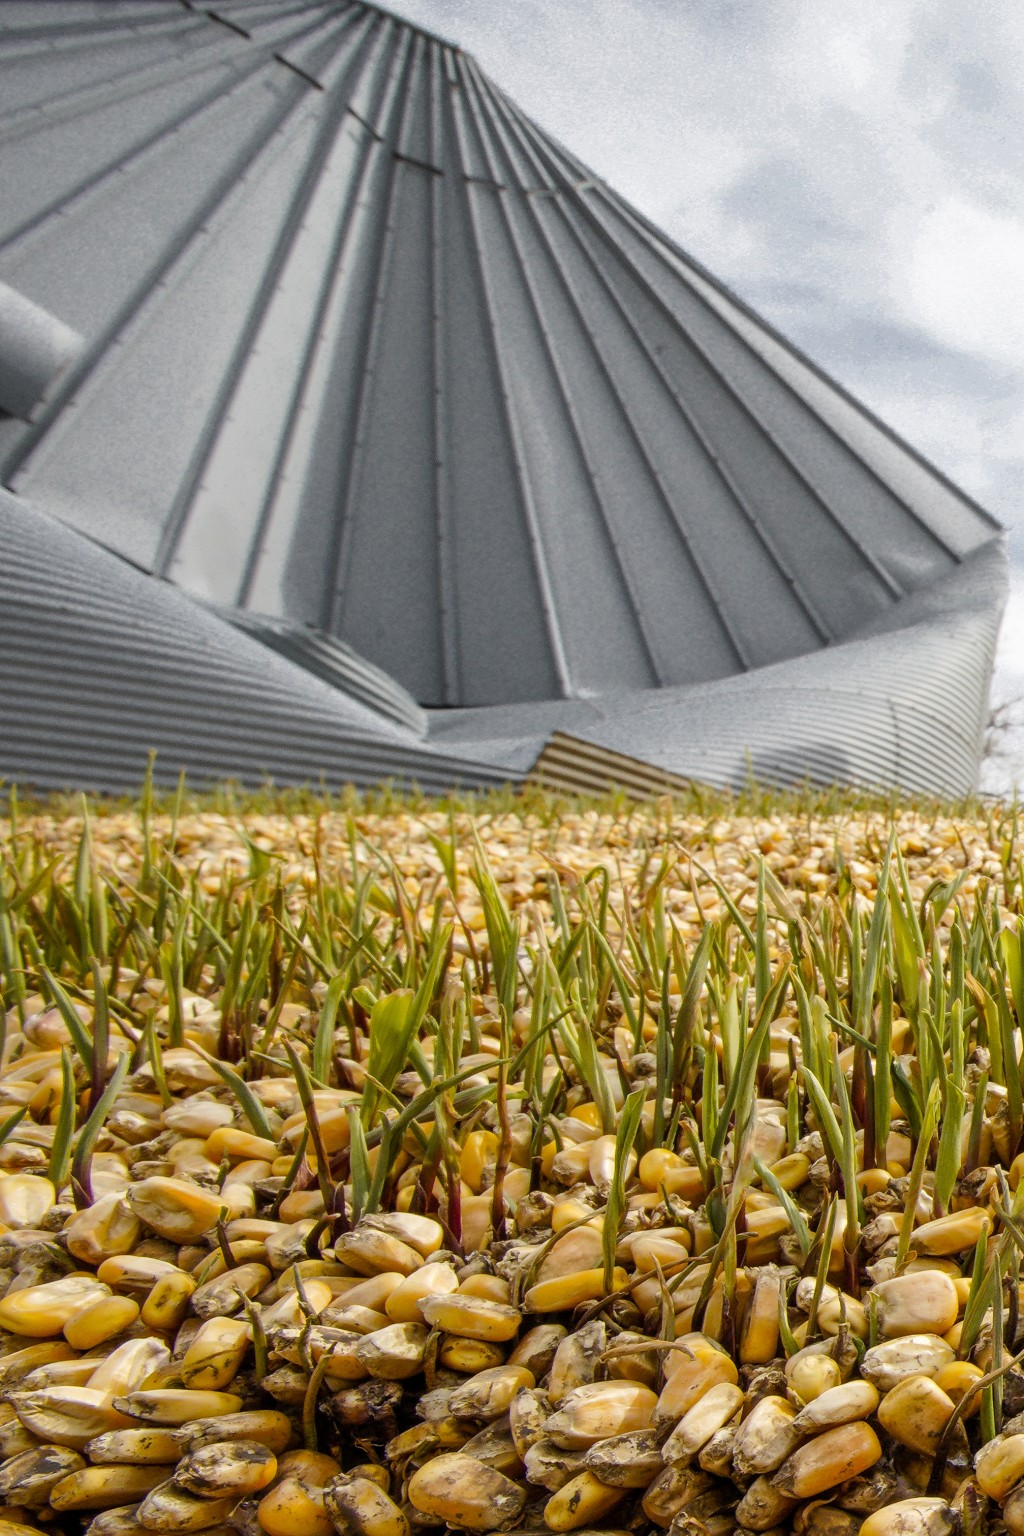 In this Wednesday, April 10, 2019 photo, corn seed begins to sprout after bursting out of a destroyed grain silo due to flooding on a farm in Bellevue